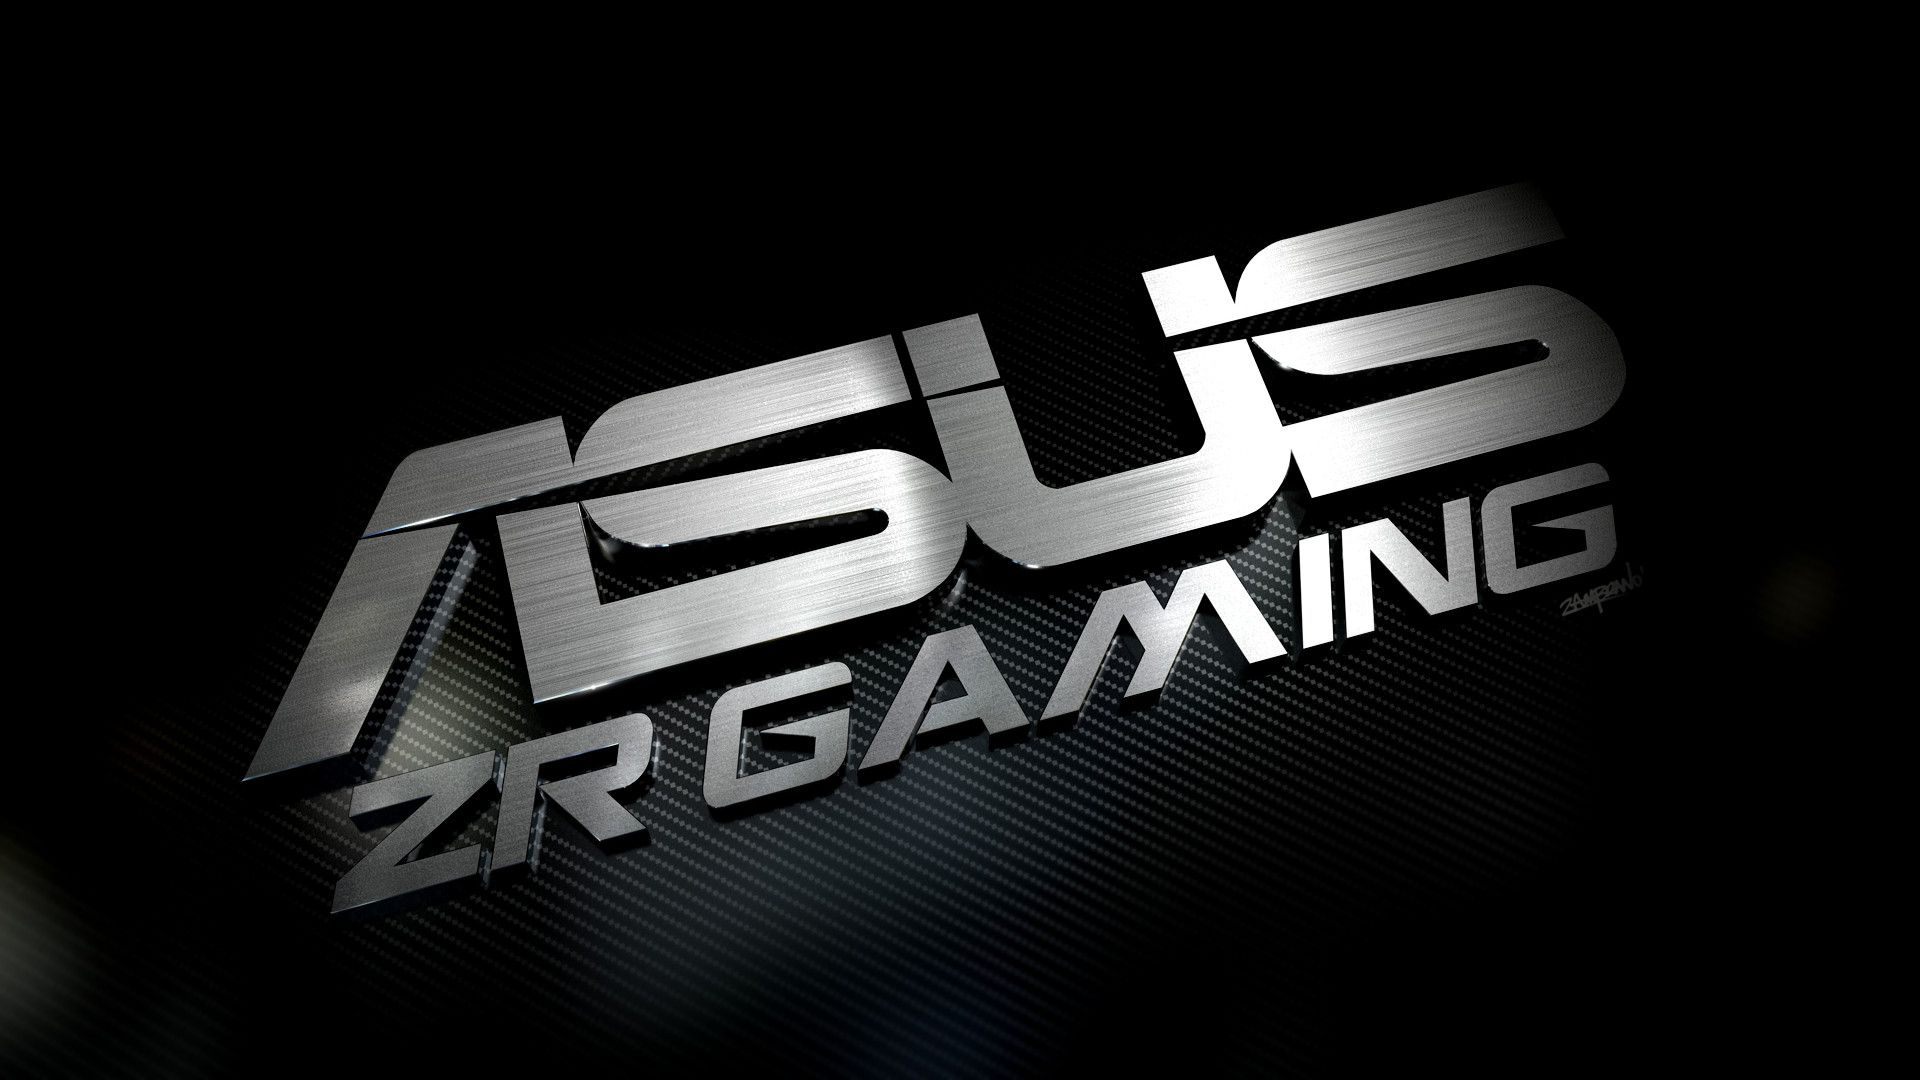 Download Wallpaper Asus